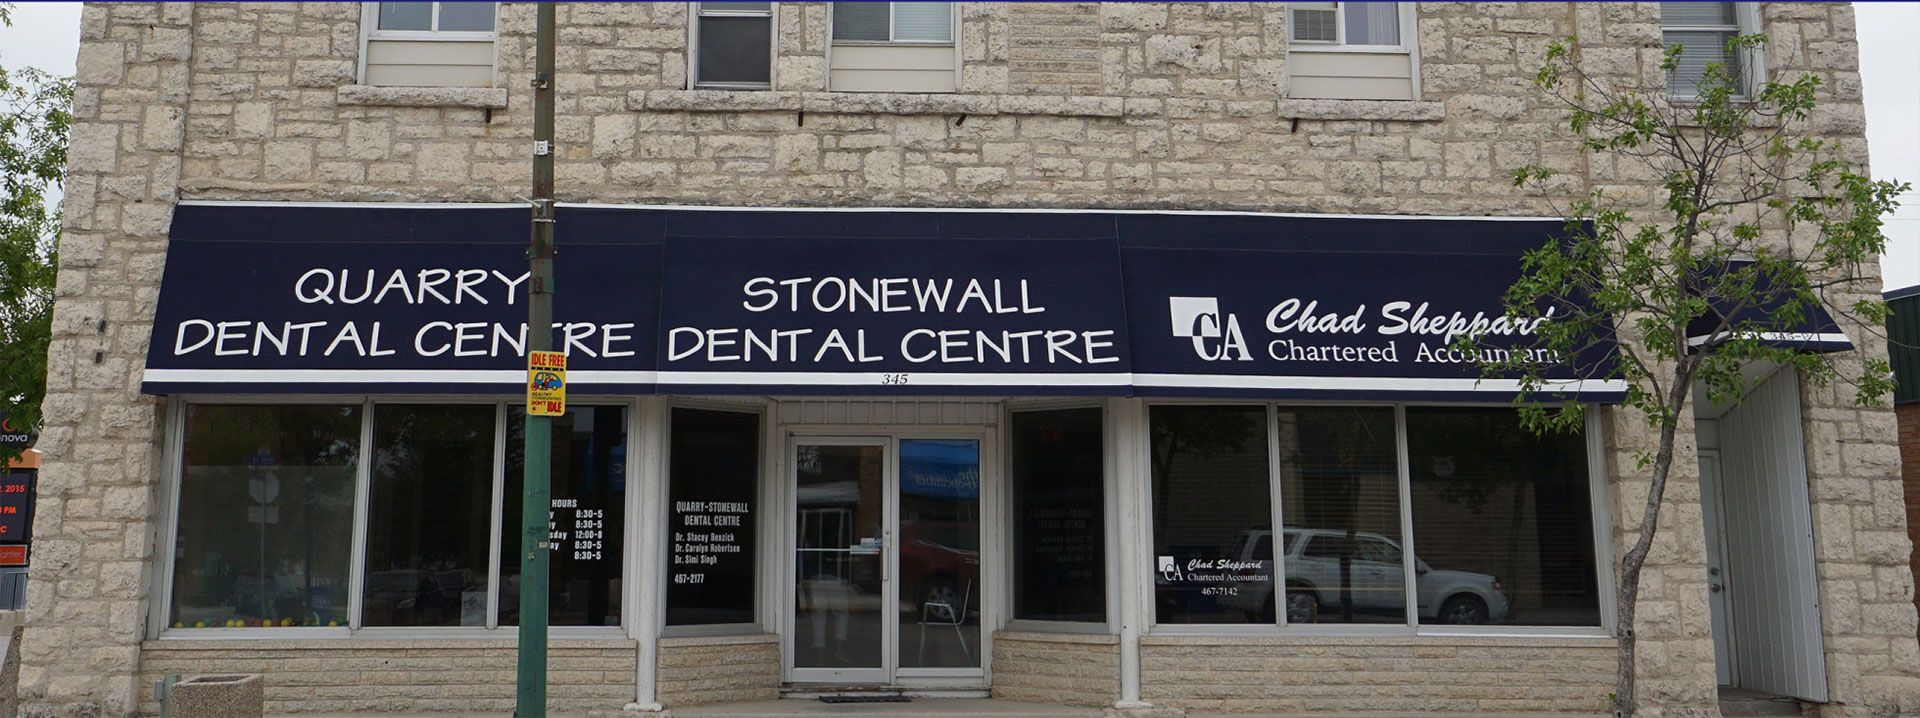 Emergency Dental Care in Stonewall